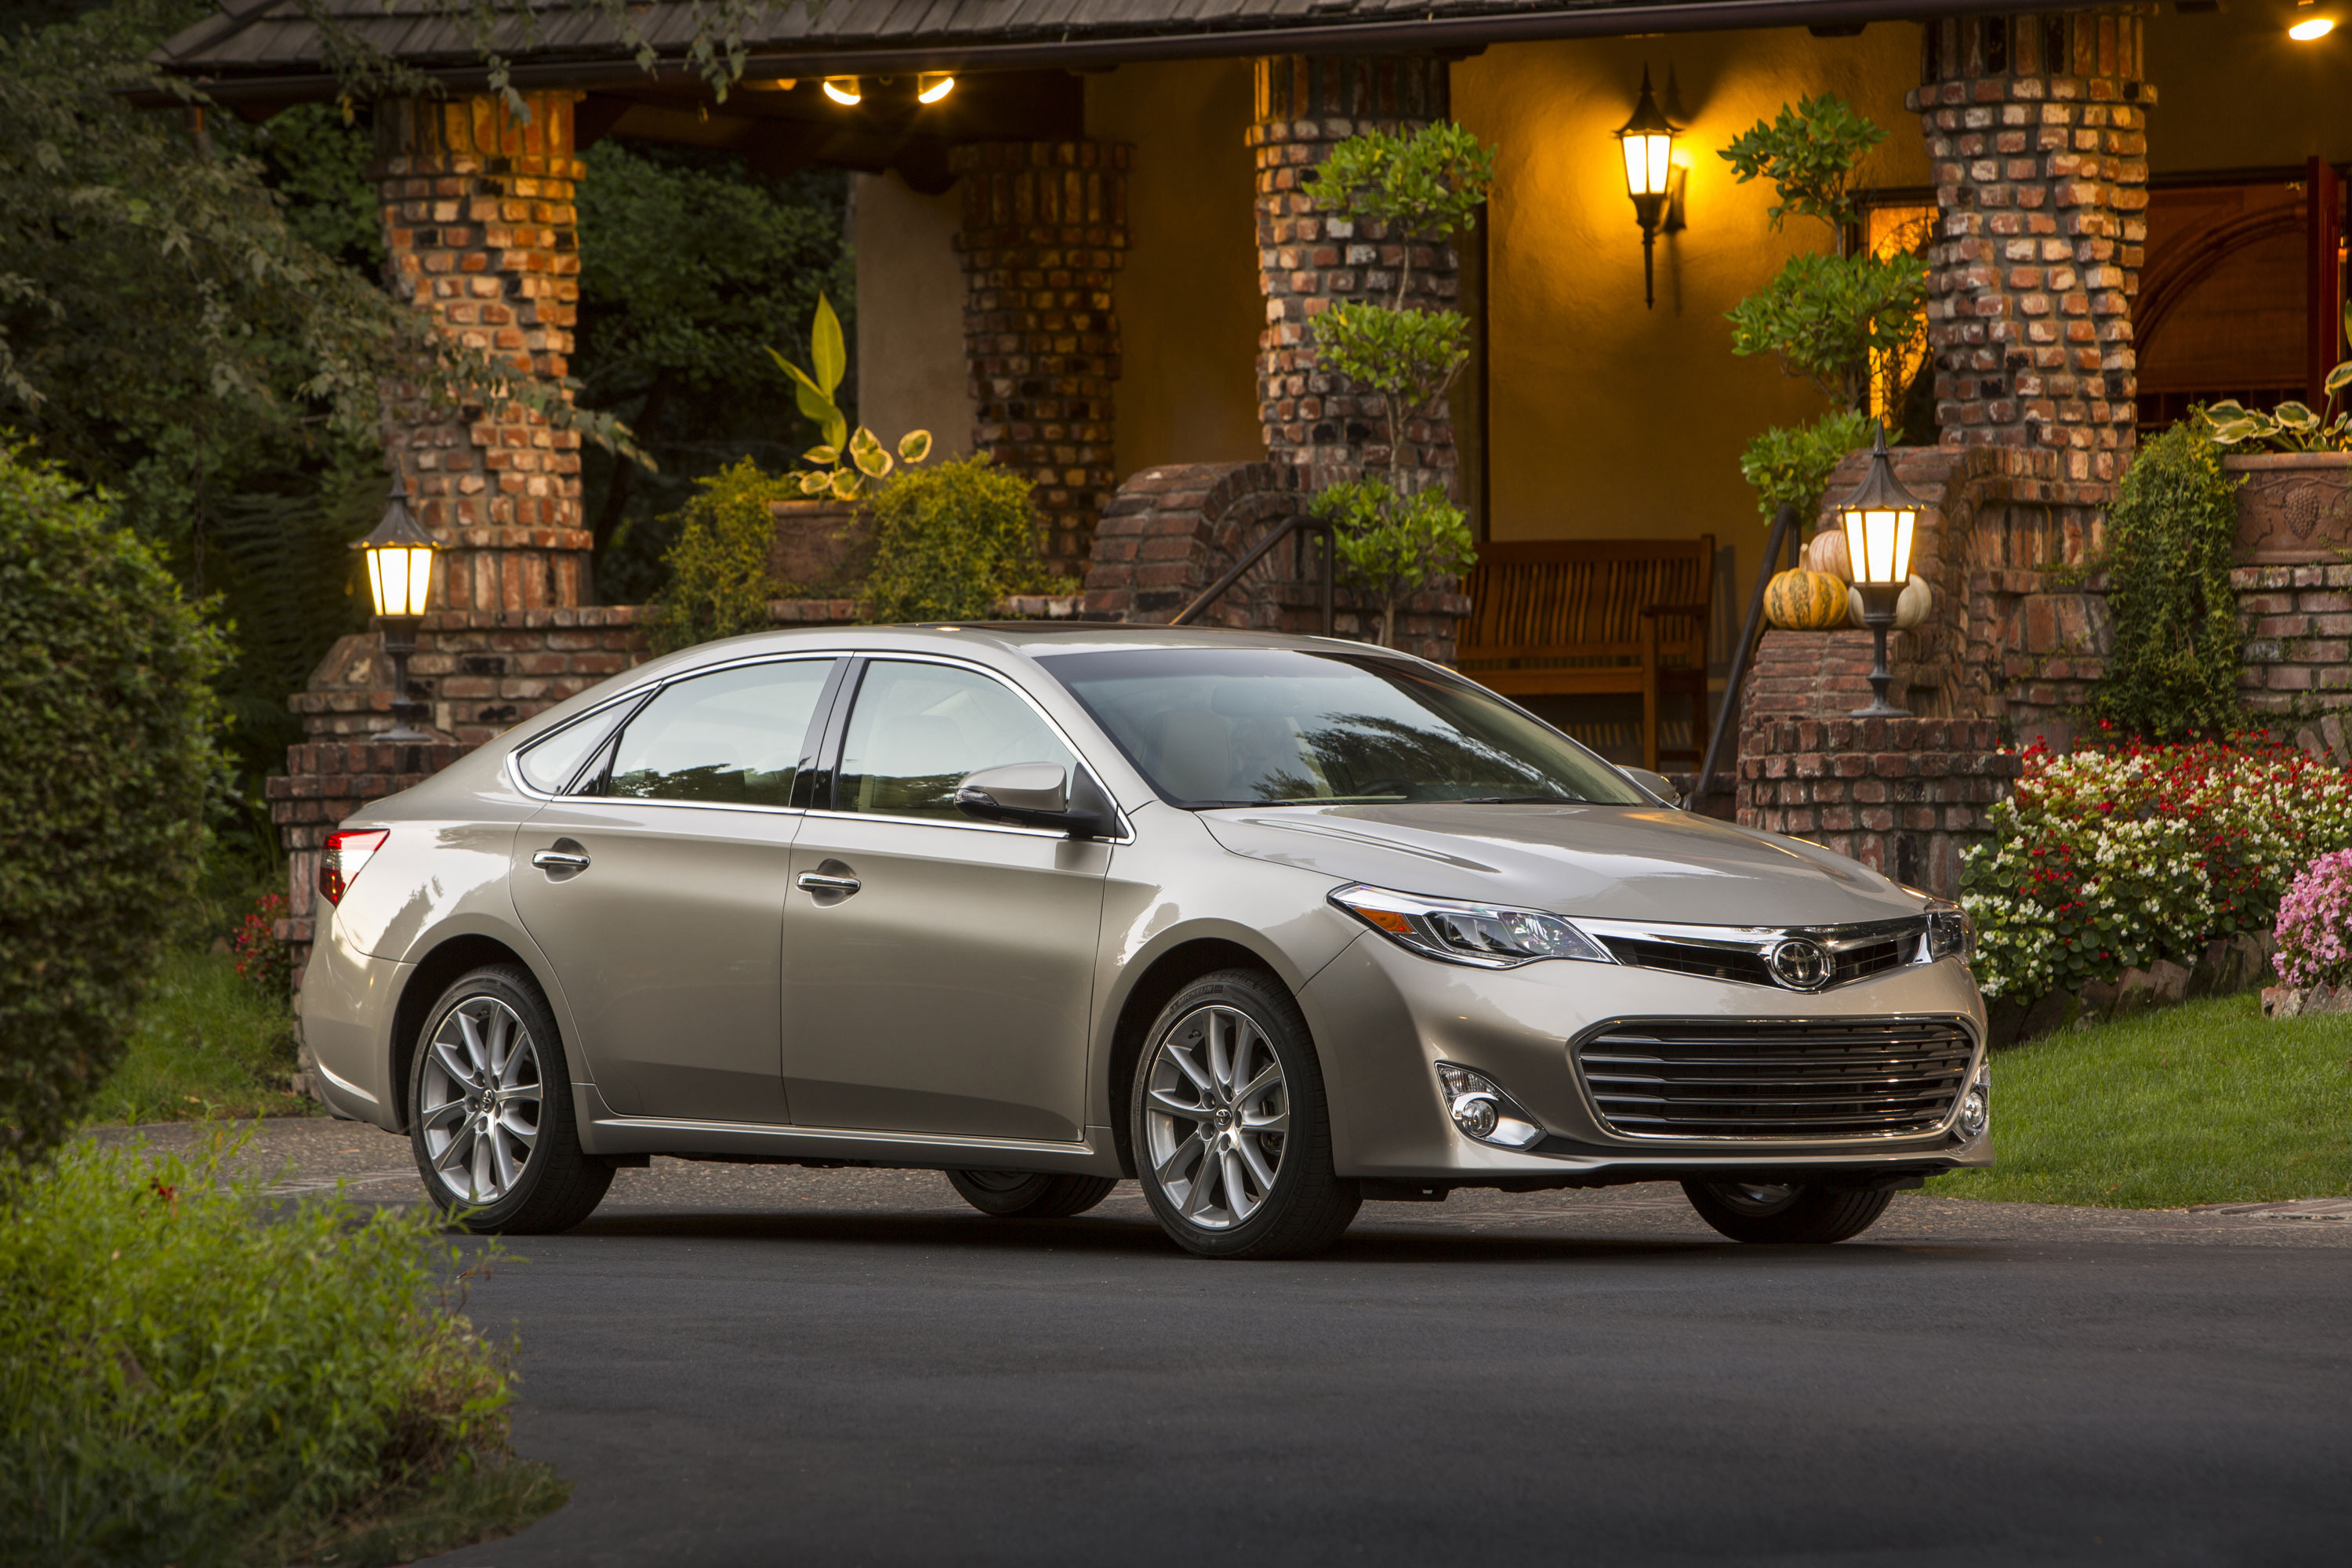 Toyota to make Apple CarPlay available in 3 models | Mega